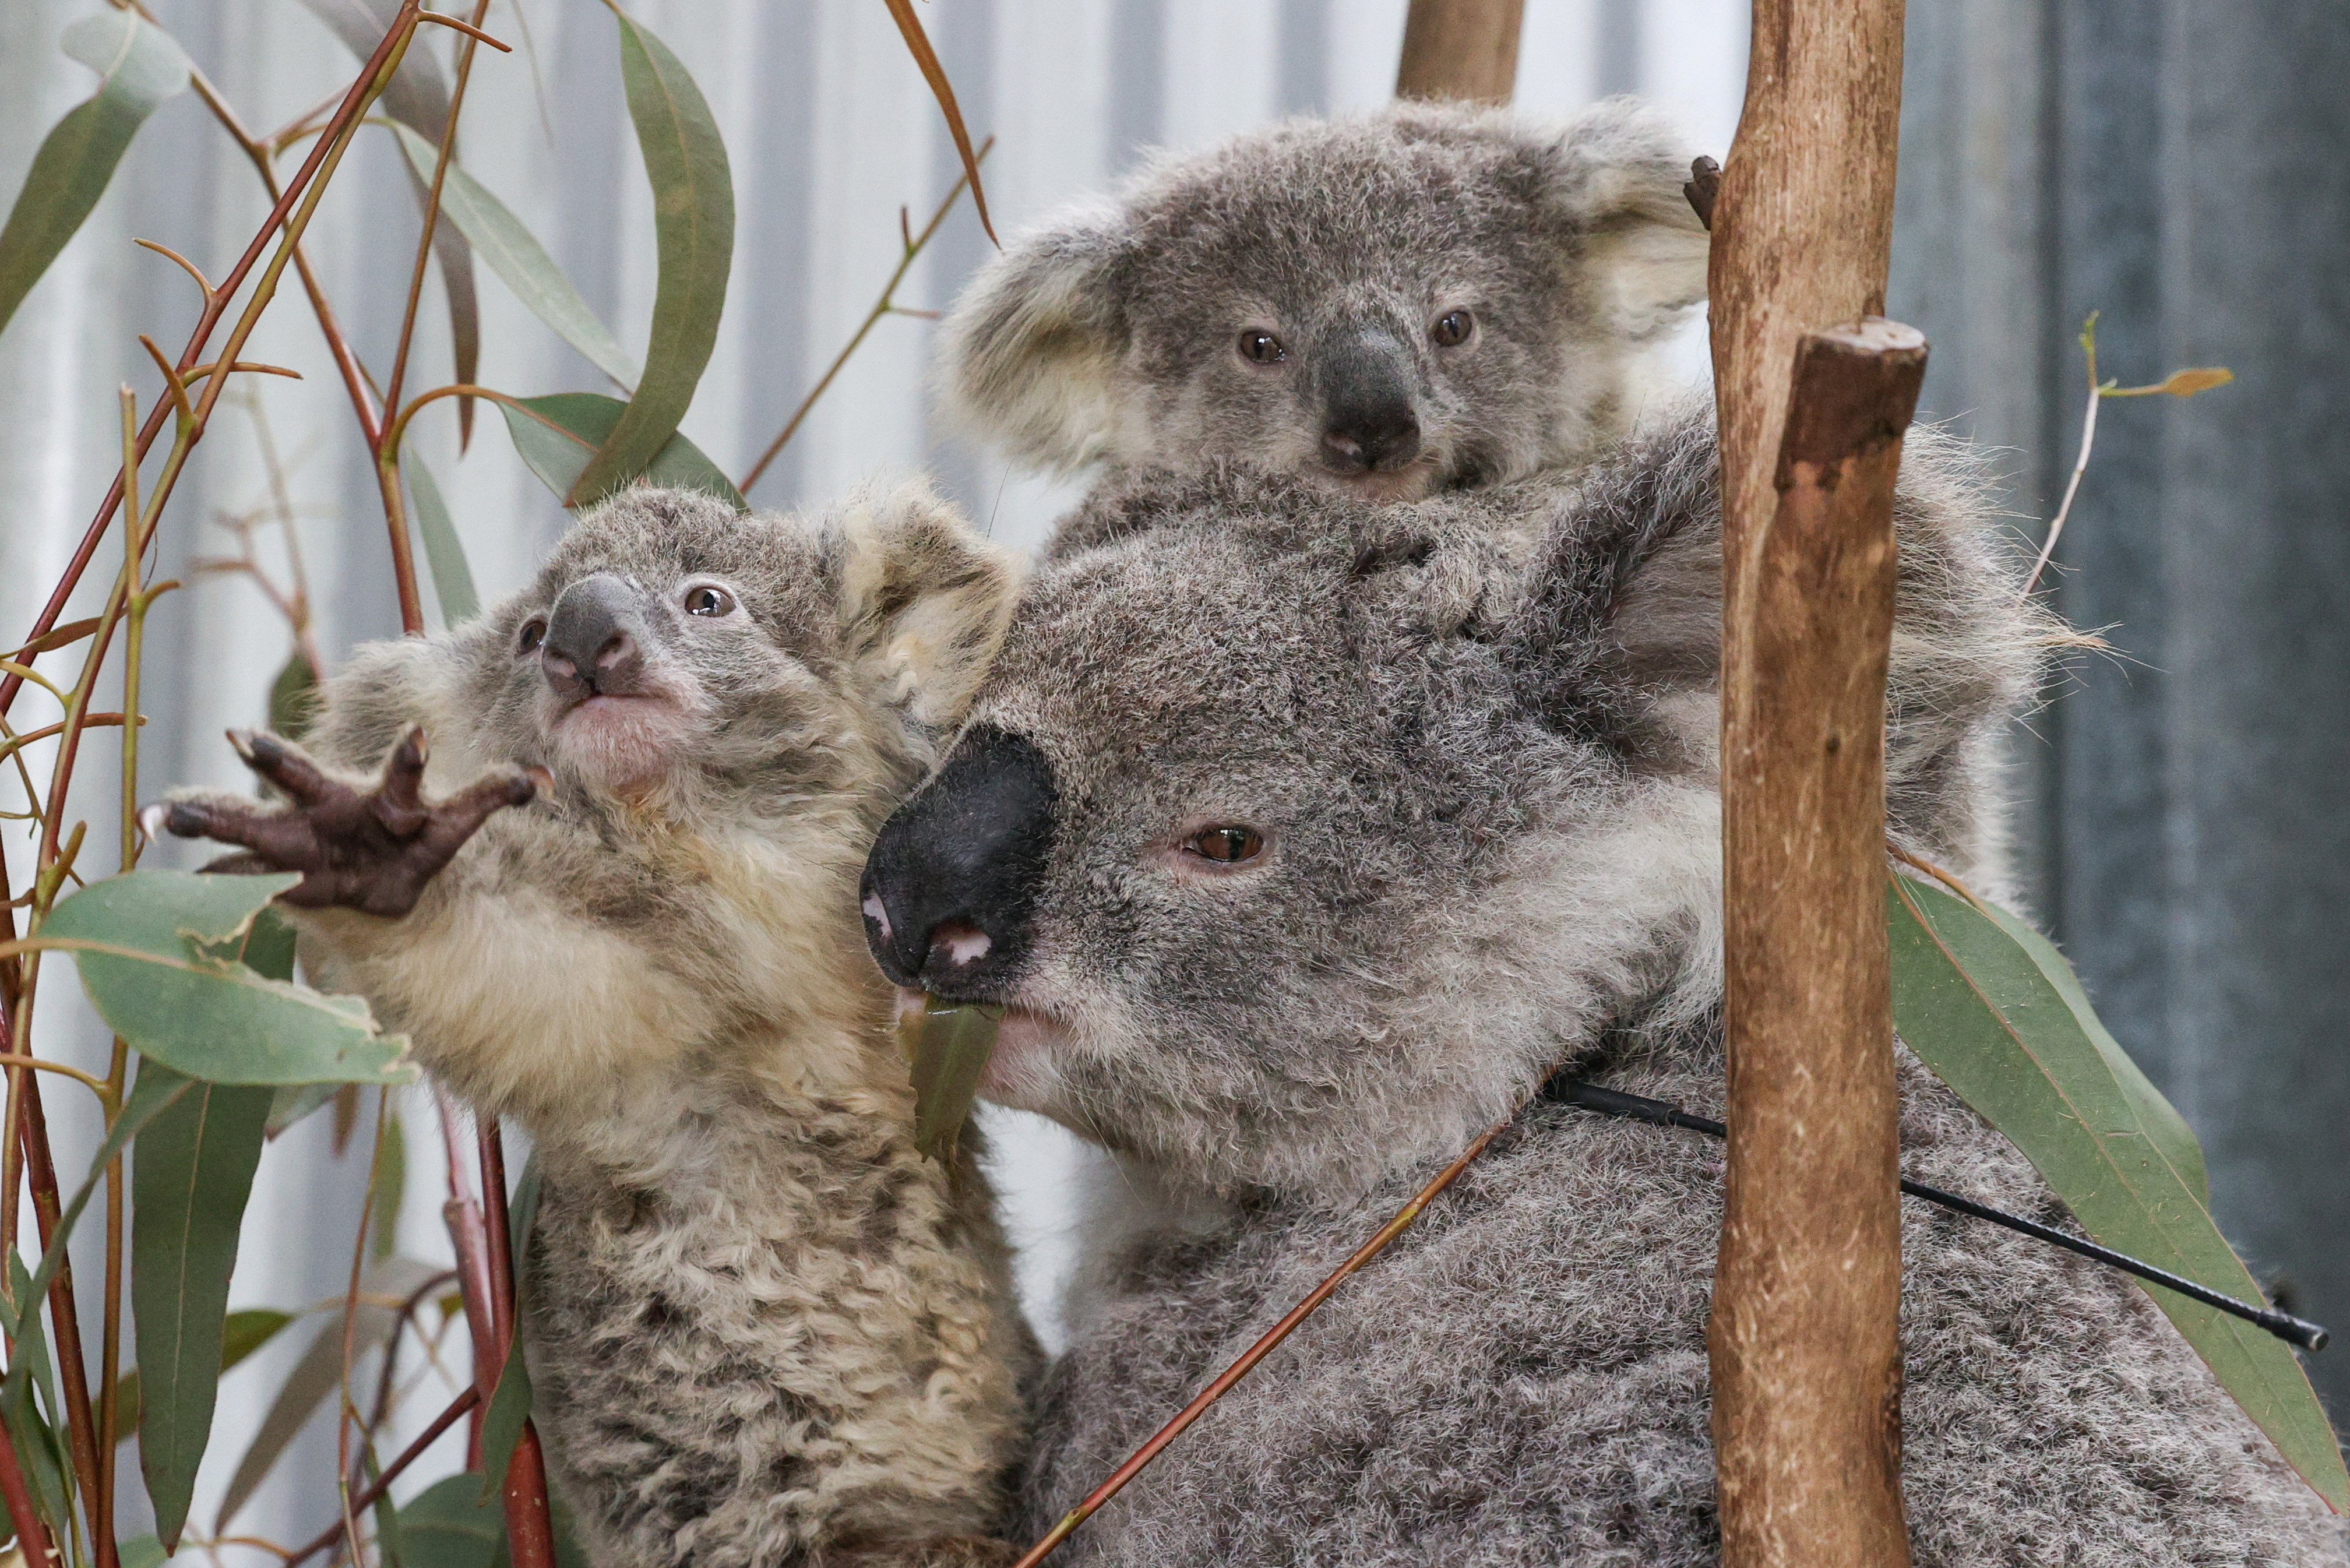 """A mother koala named Gladys is pictured with her twin joeys, who have been medically diagnosed as being underweight, at a rehabilitation enclosure next to their carer's home, who volunteers for the animal rescue agency, Wildlife Information, Rescue and Education Service, also knows as WIRES, where they are being rehabilitated, in Wedderburn, Australia, September 11, 2020. Gladys and her joeys were rescued from an area where urban development is encroaching on koala habitat. REUTERS/Loren Elliott      SEARCH """"KOALAS ELLIOTT"""" FOR THIS STORY. SEARCH """"WIDER IMAGE"""" FOR ALL STORIES     TPX IMAGES OF THE DAY - RC2GLJ9L2515"""